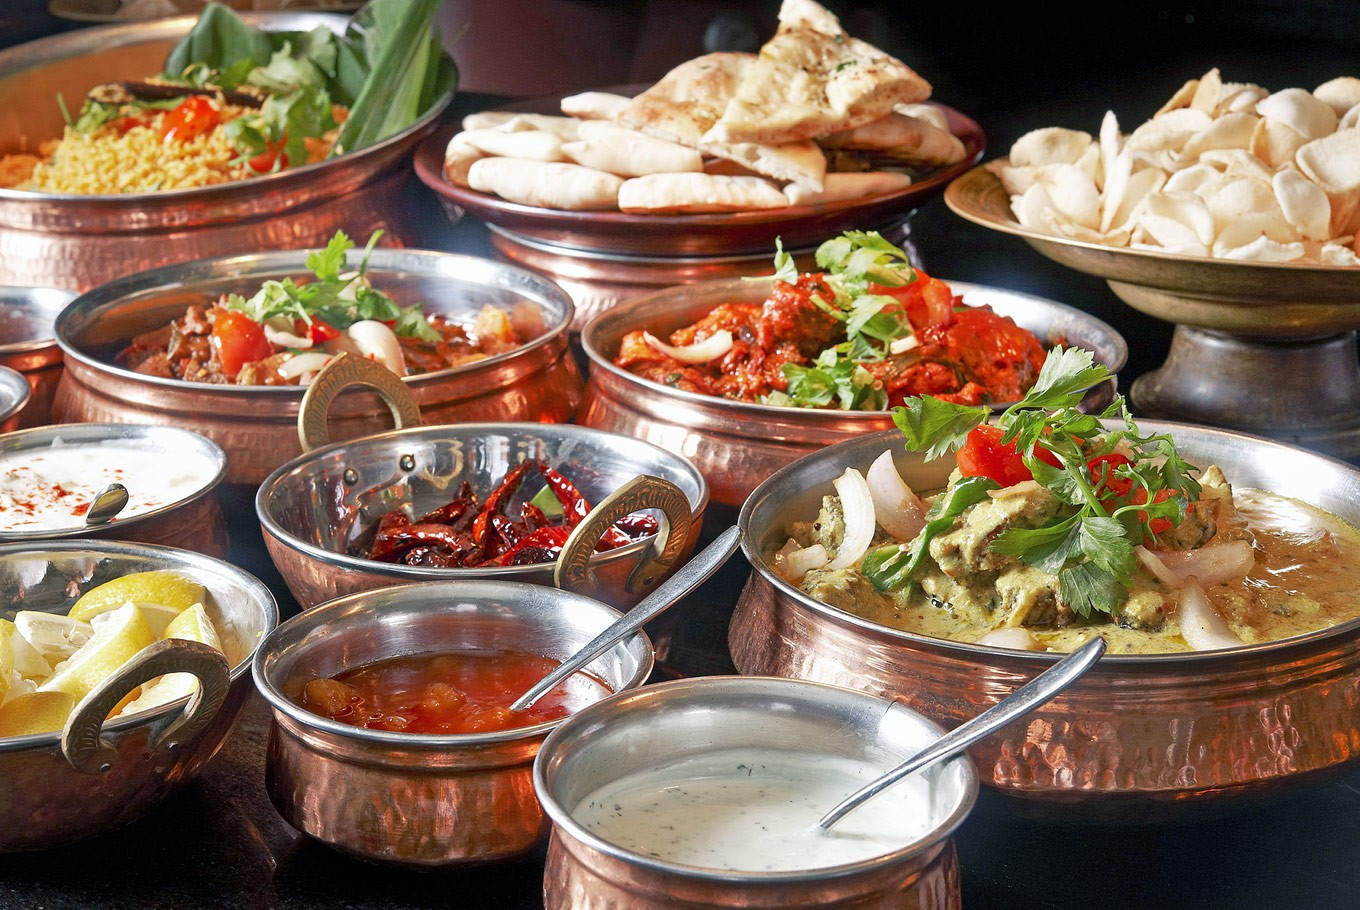 Cuisine India The Tastes Of India Spices Give Indian Food The Edge Food The